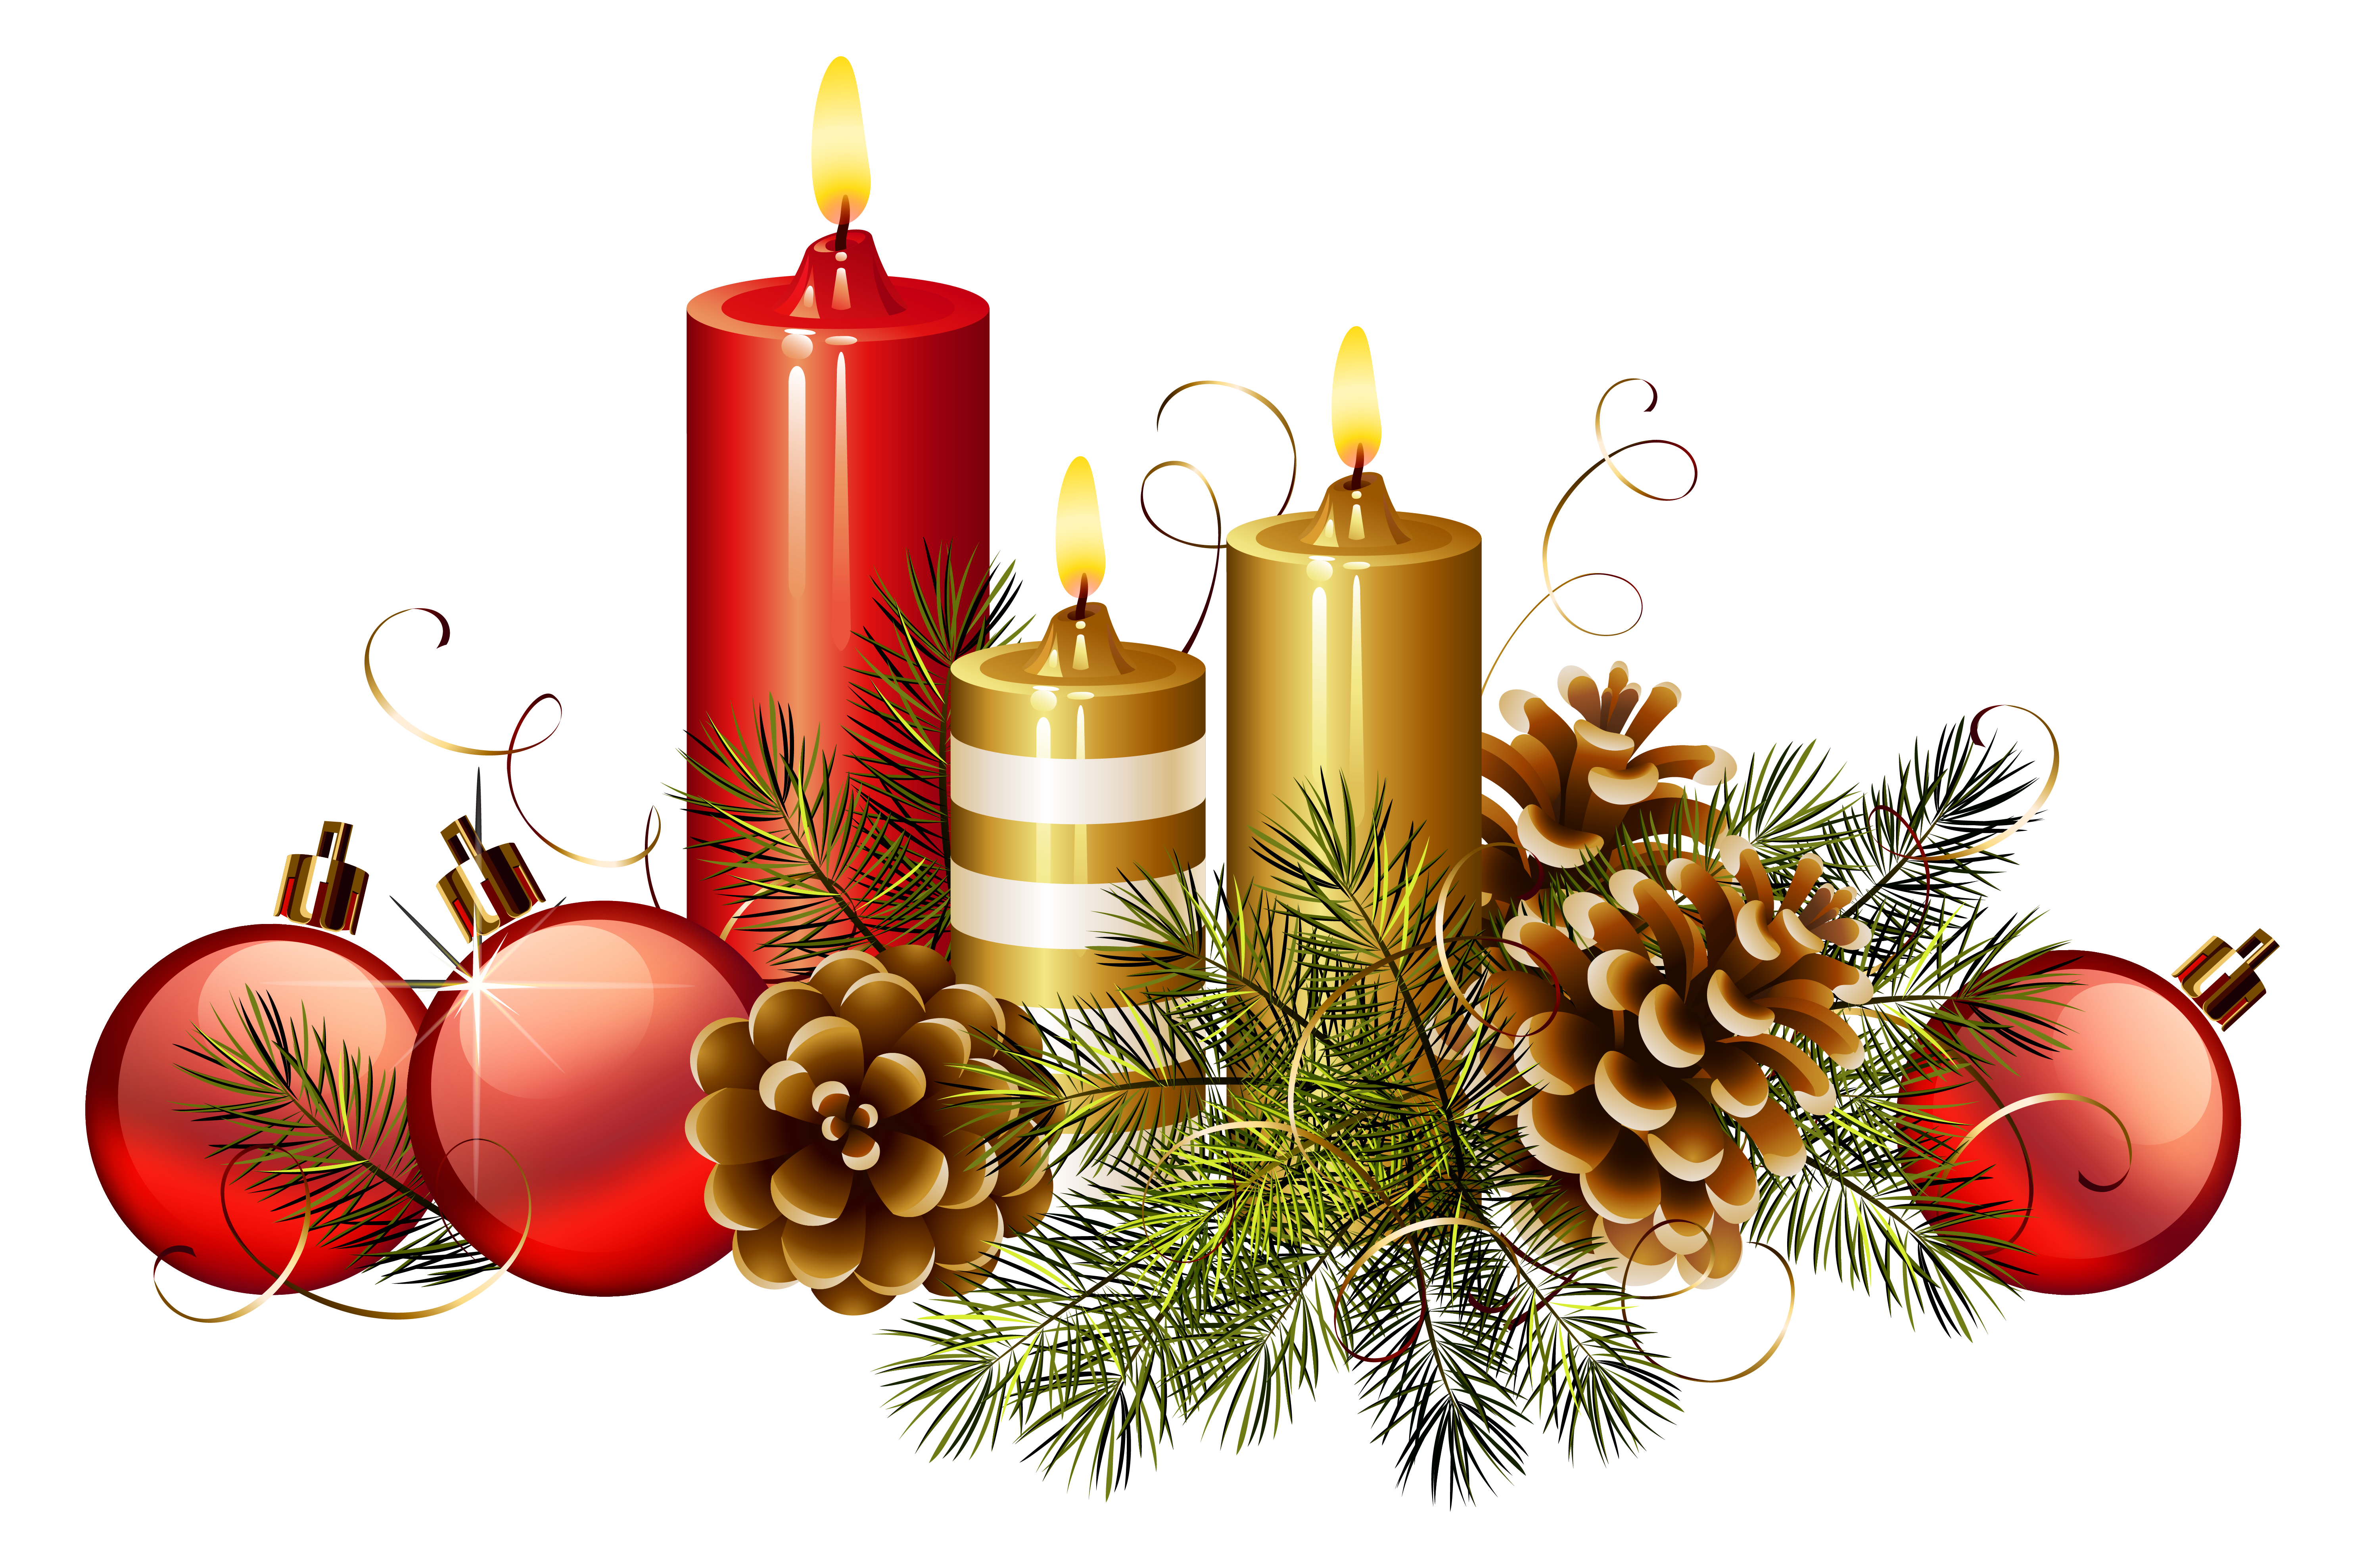 Christian christmas clipart free png royalty free download Christmas Candles PNG Clipart Image | Gallery Yopriceville - High ... png royalty free download